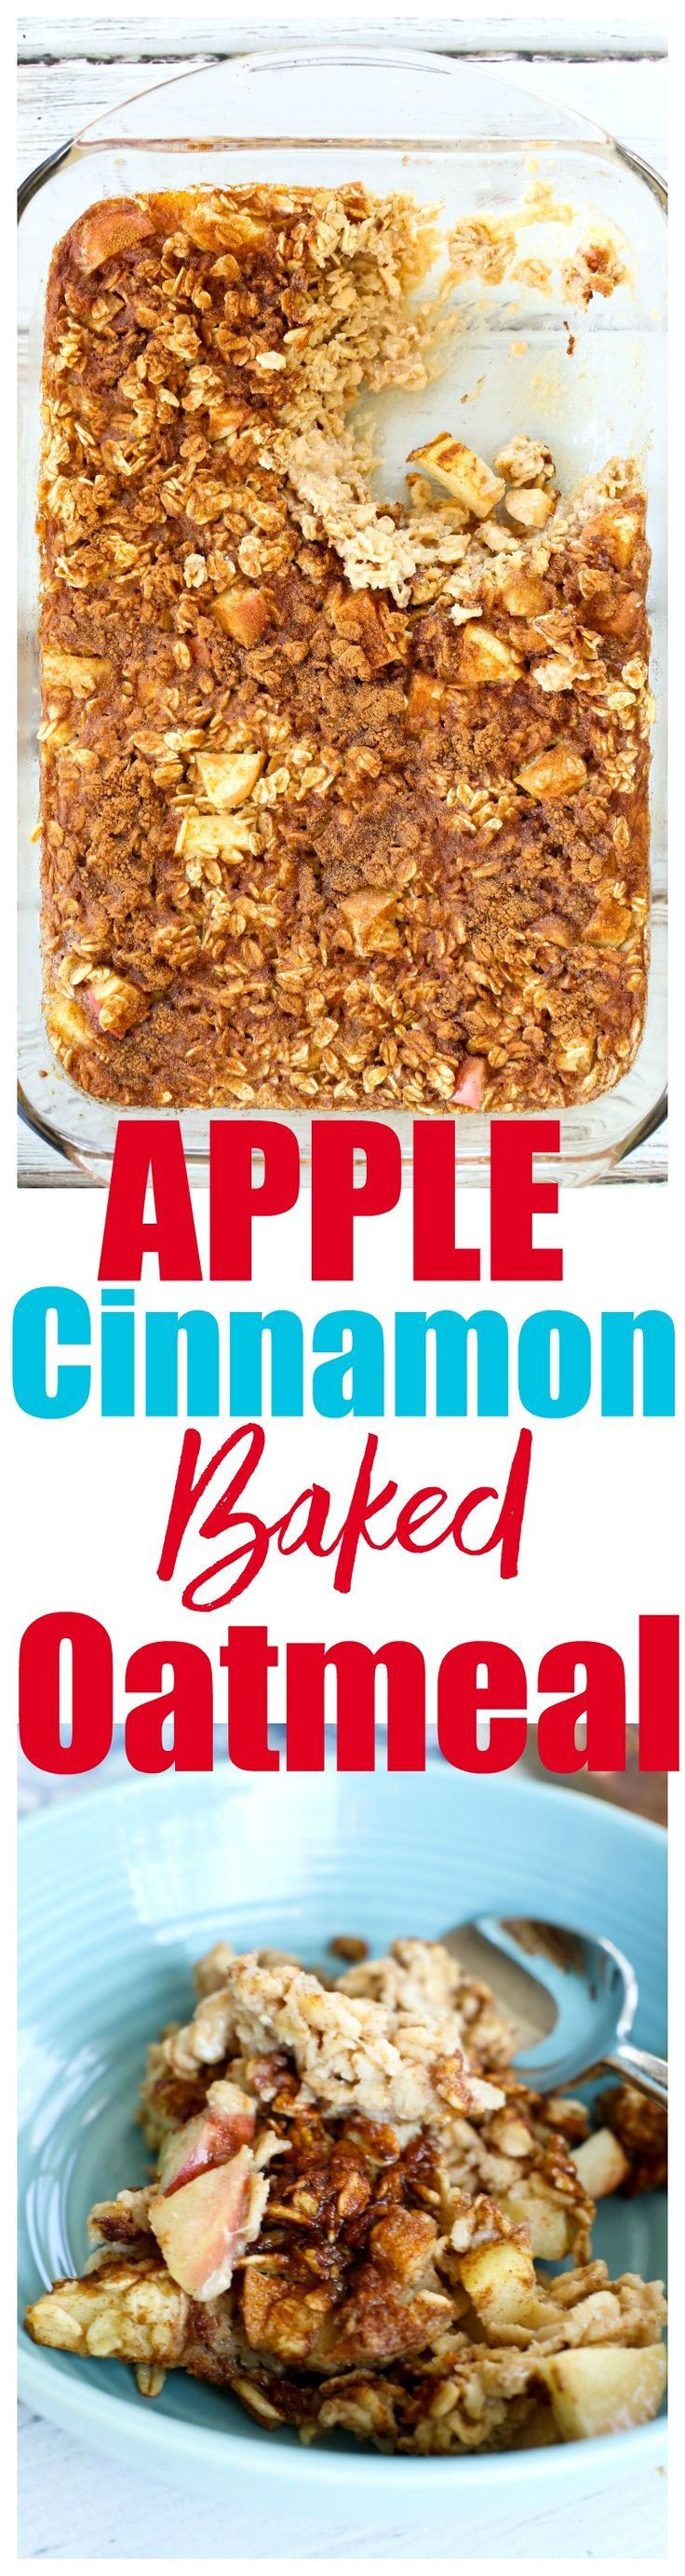 Apple cinnamon baked oatmeal recipe. This is an easy one-bowl recipe that makes a great healthy breakfast ideas! via @Maryea Flaherty